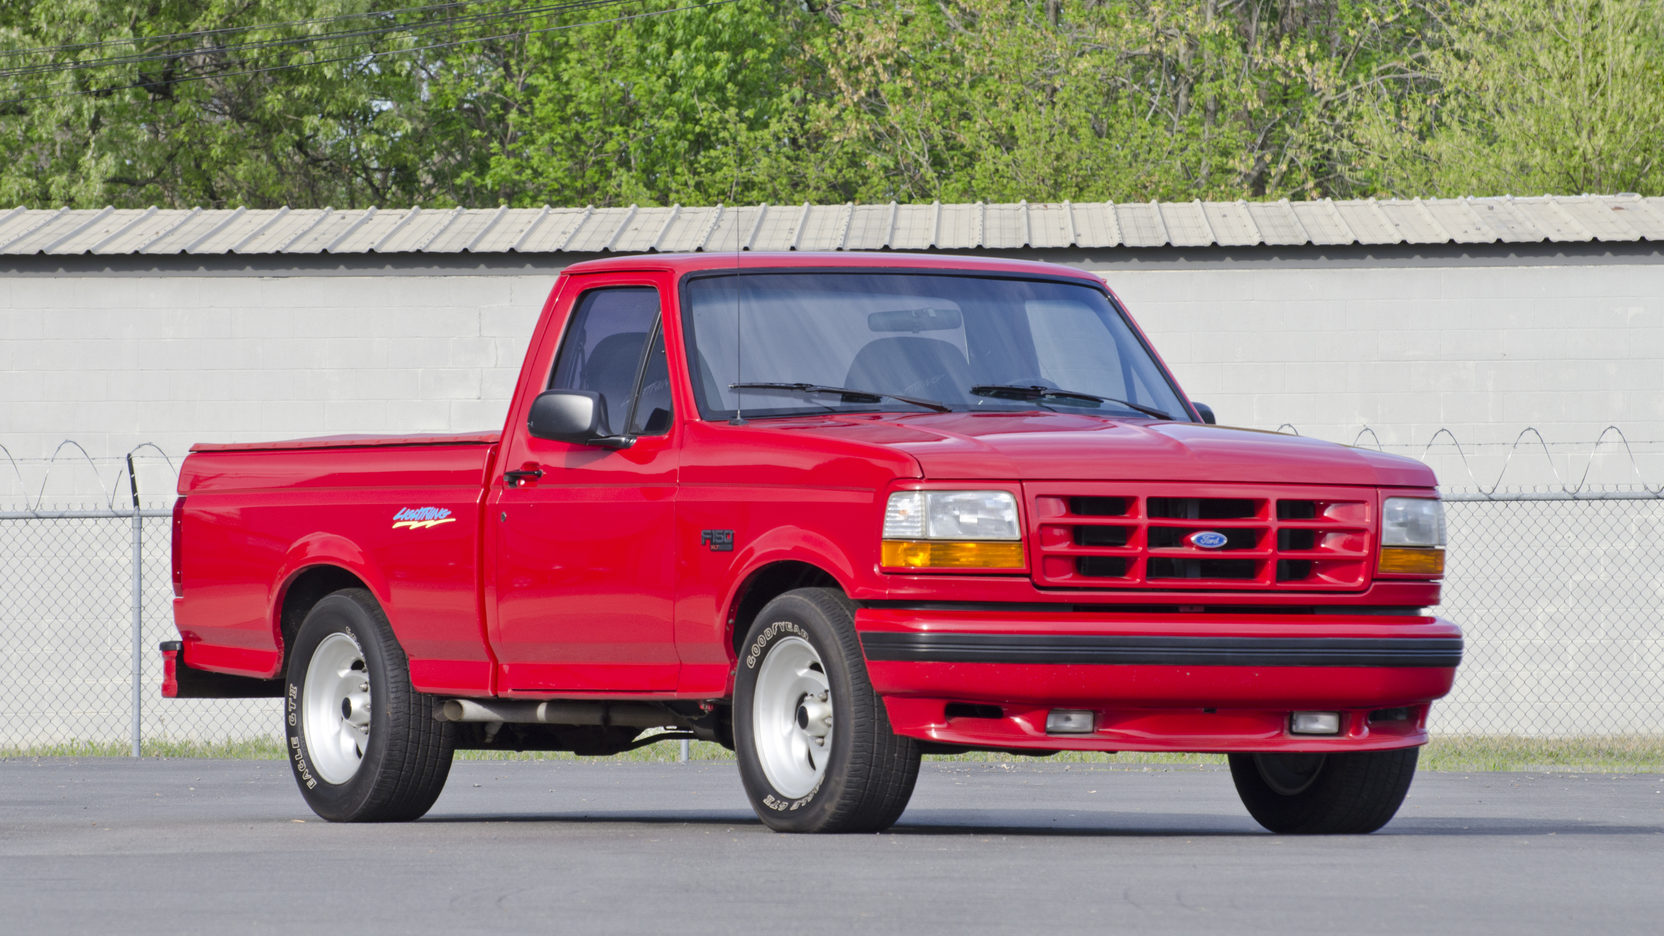 1993 Ford F150 Lightning front 3/4